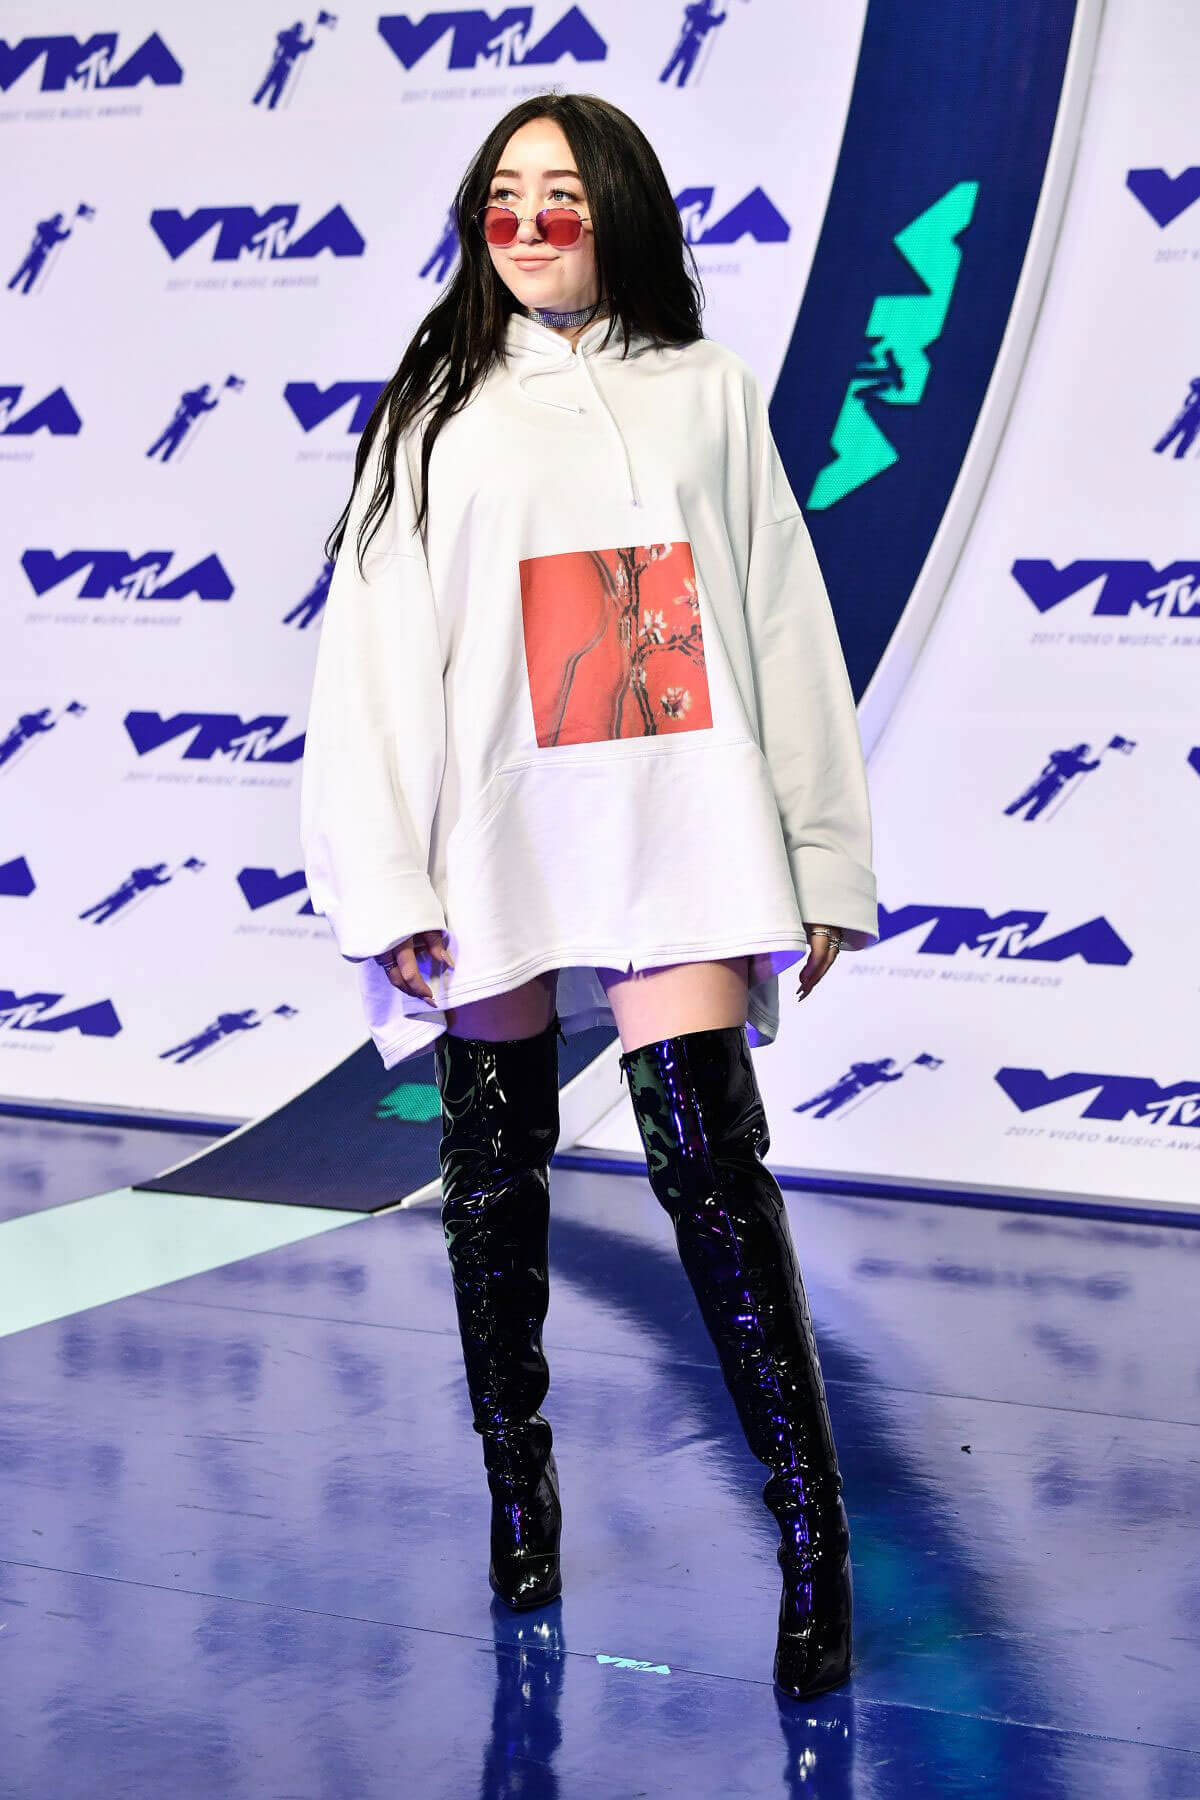 Noah Cyrus Stills at MTV Video Music Awards #VMA 2017 in Los Angeles